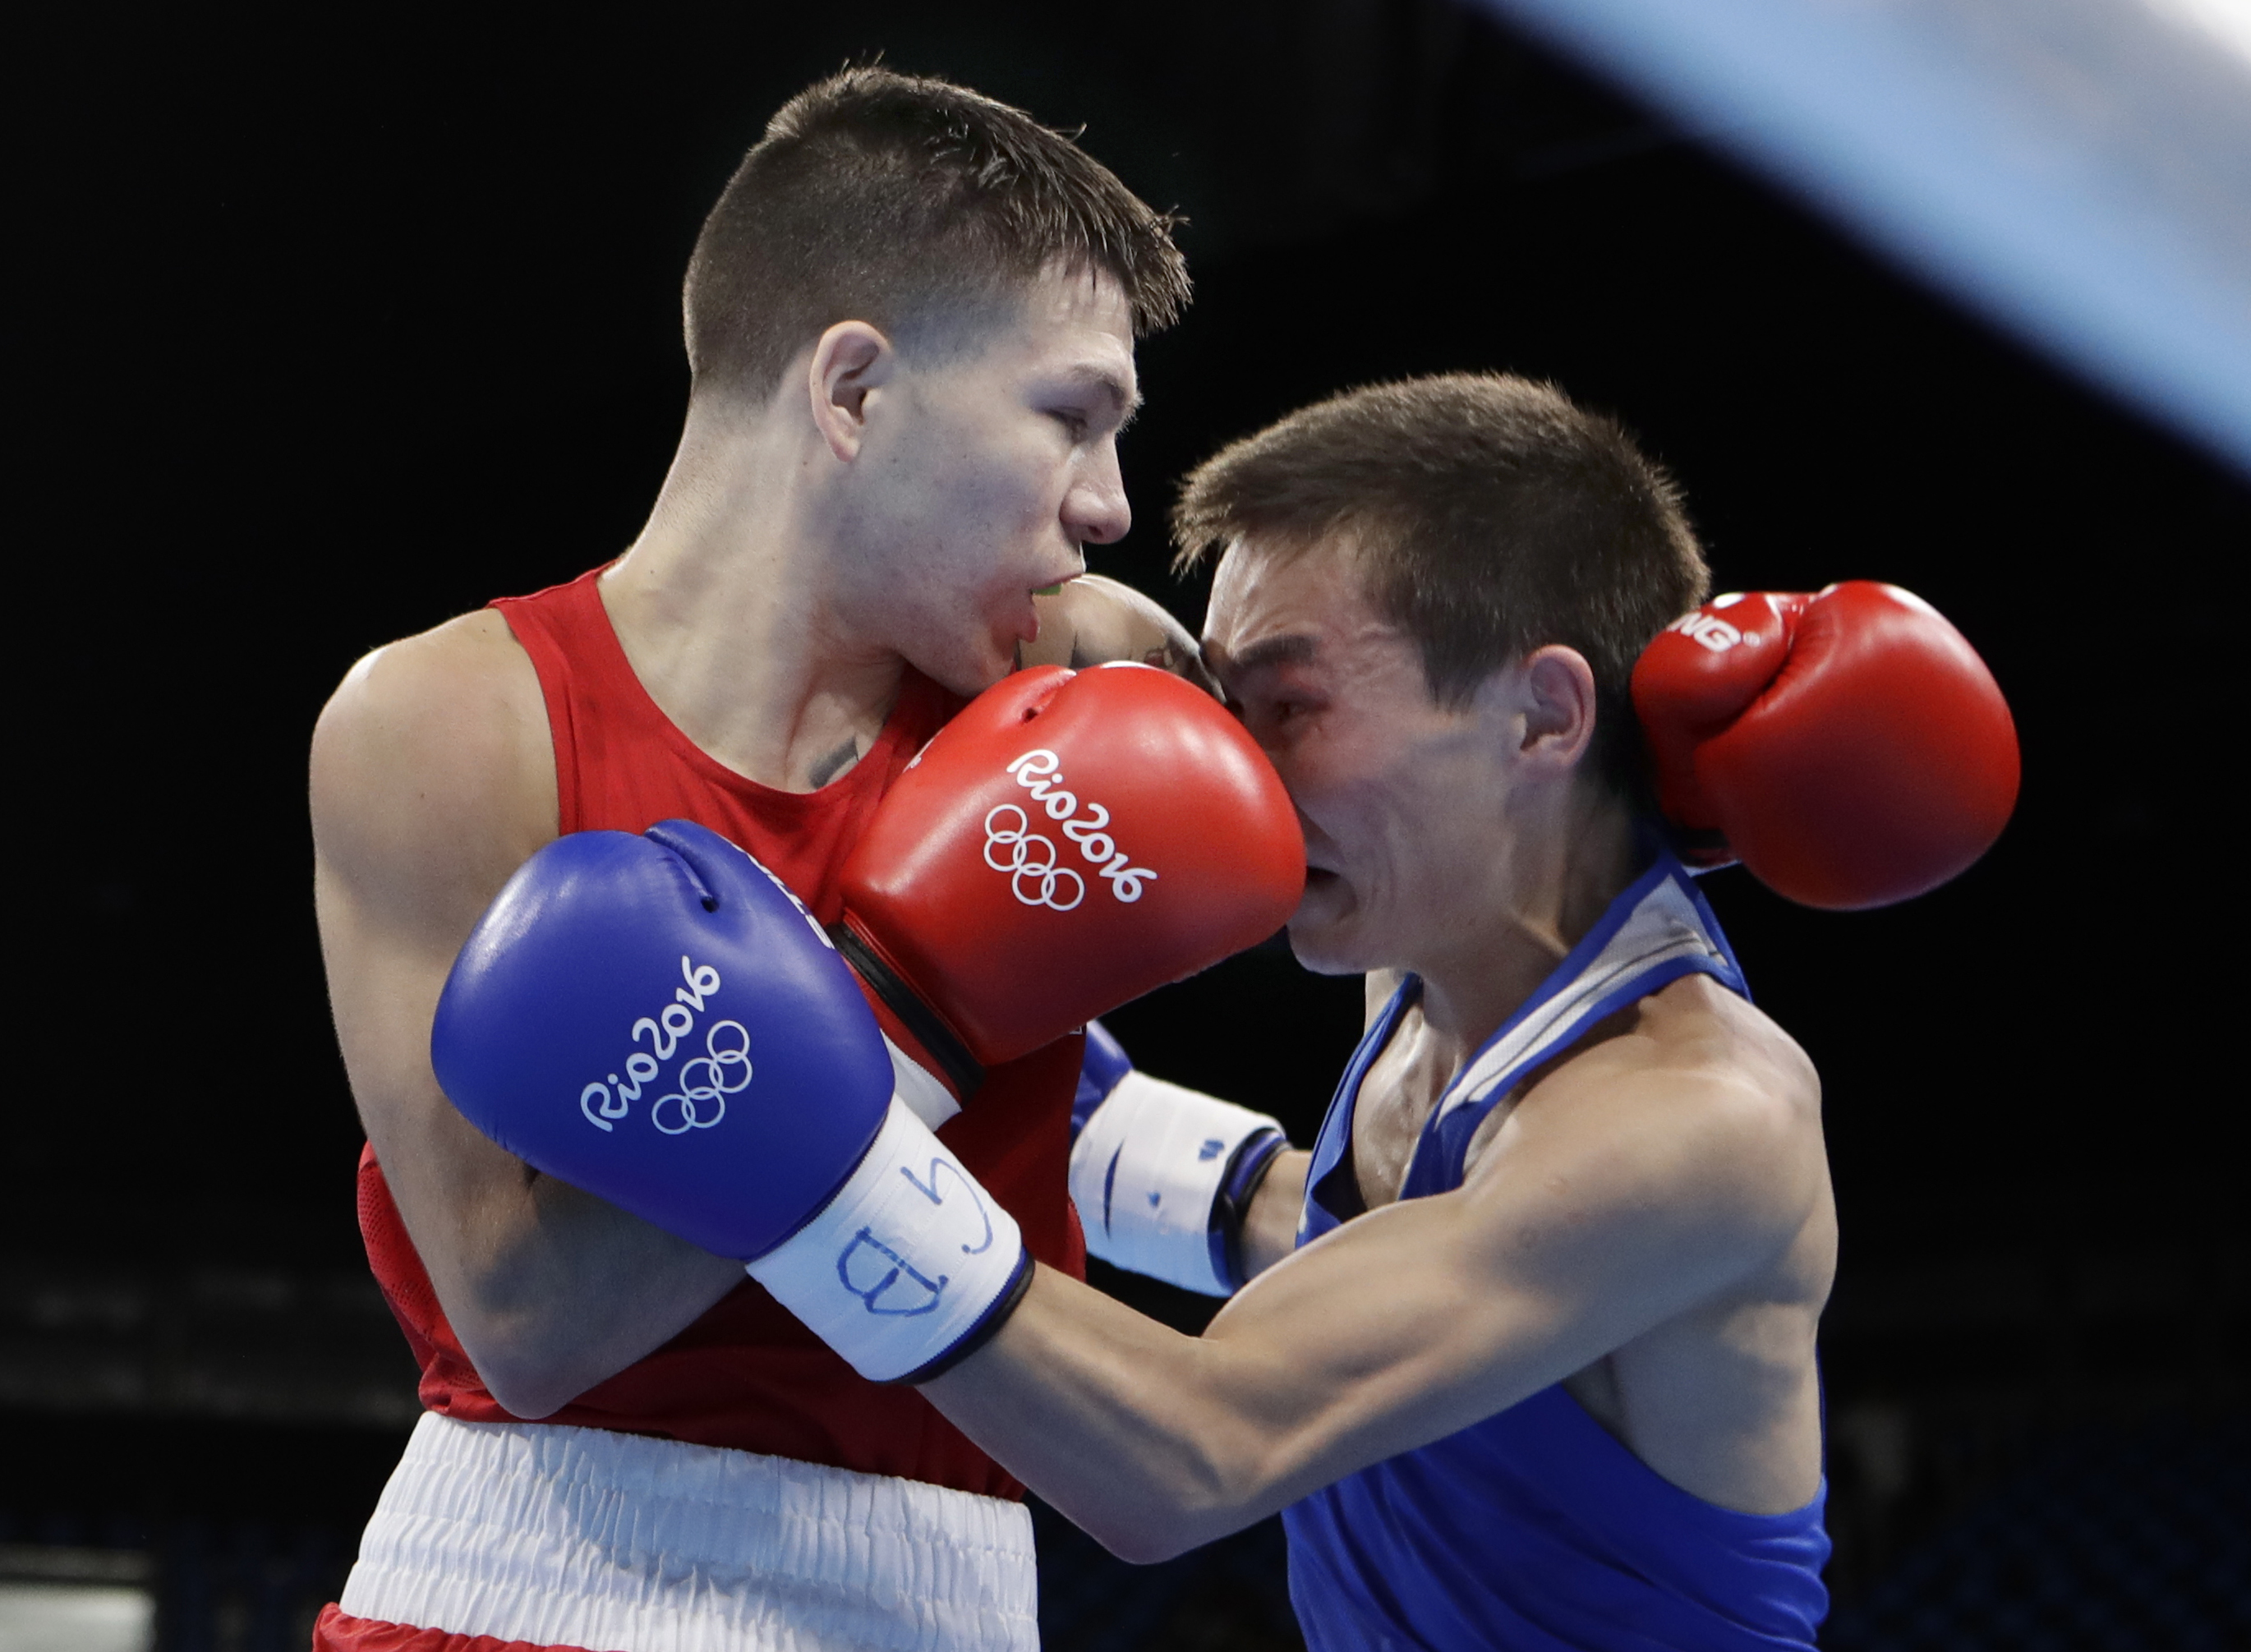 United States' Nico Miguel Hernandez, left, fights Russia's Vasilii Egorov during a men's light flyweight 49-kg preliminary boxing match at the 2016 Summer Olympics in Rio de Janeiro, Brazil, Monday, Aug. 8, 2016. (AP Photo/Frank Franklin II)